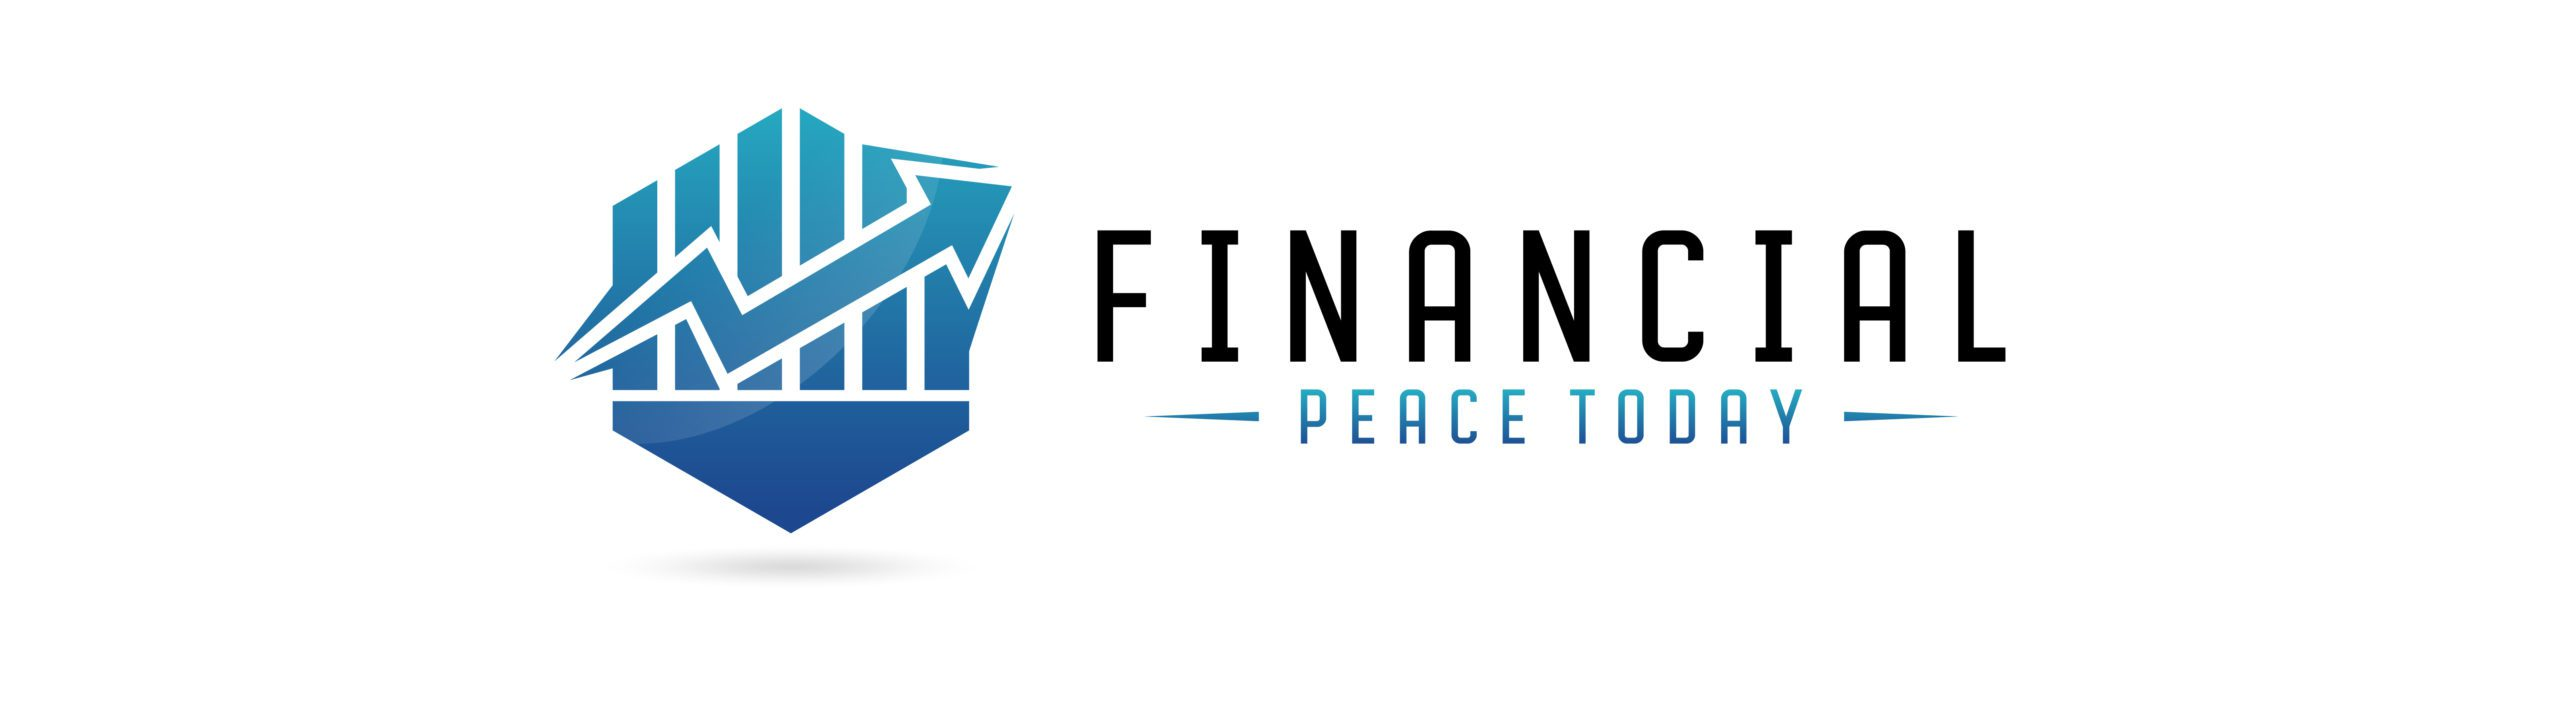 Find Financial Peace Today